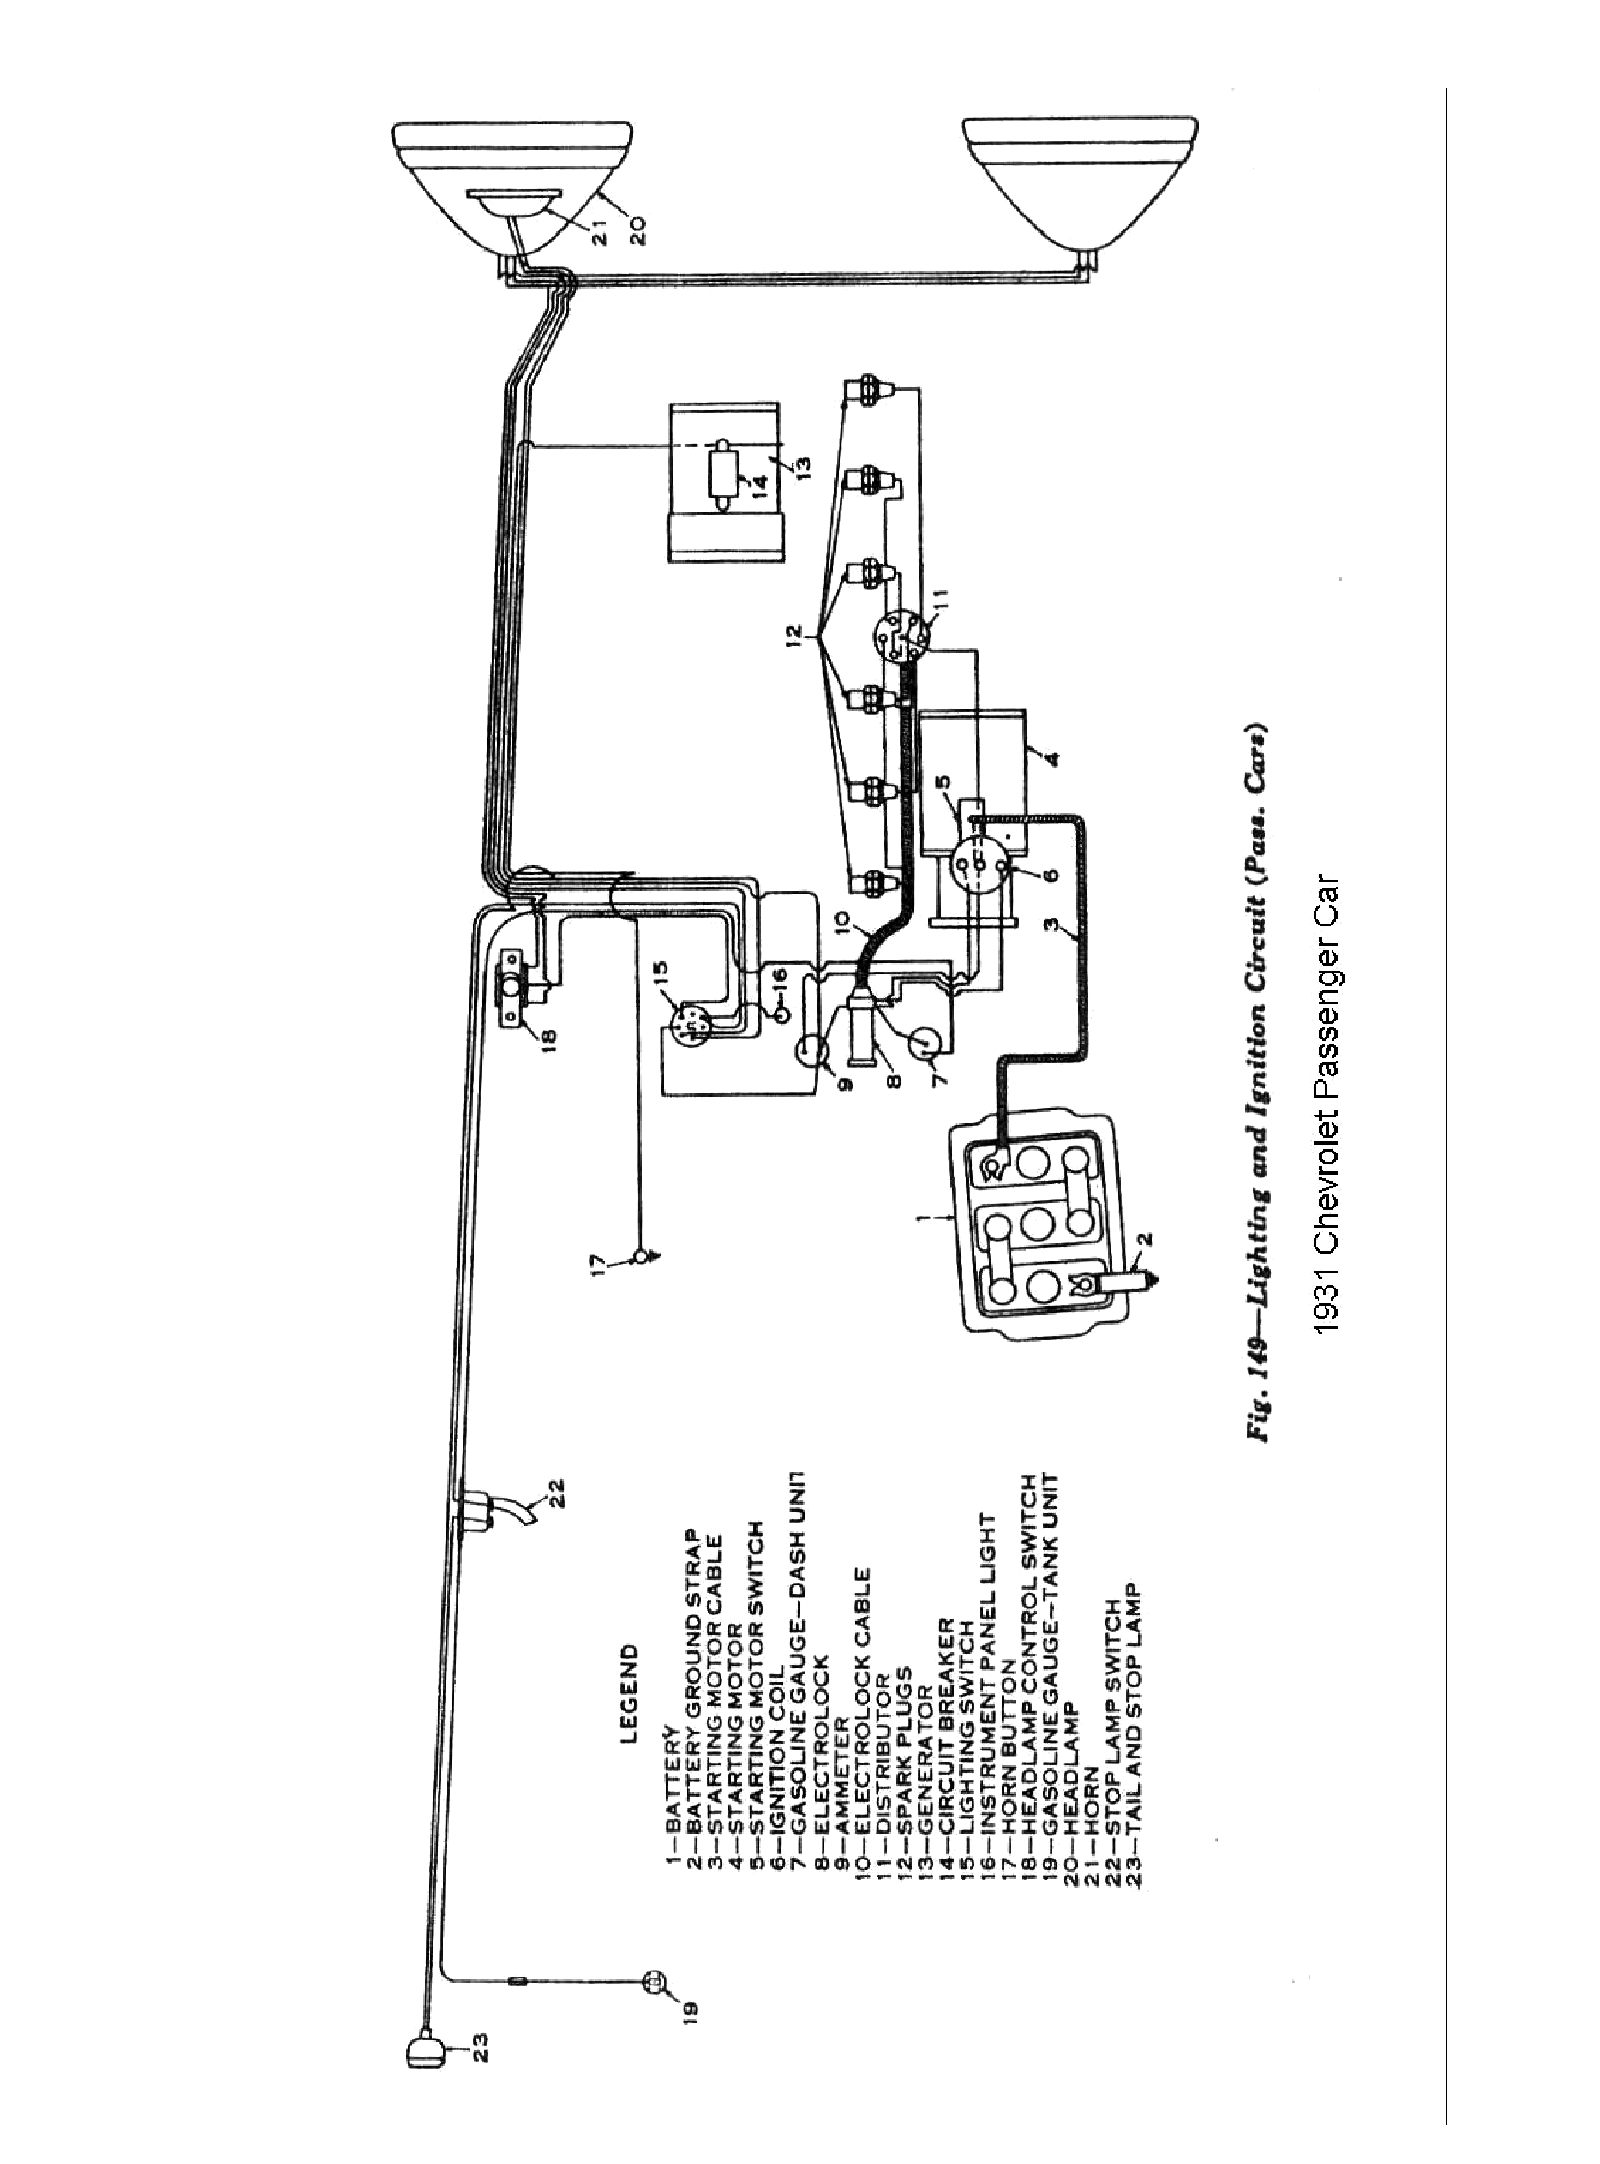 hight resolution of chevy wiring diagrams 2006 buick 3800 engine diagram 2006 buick 3800 engine diagram